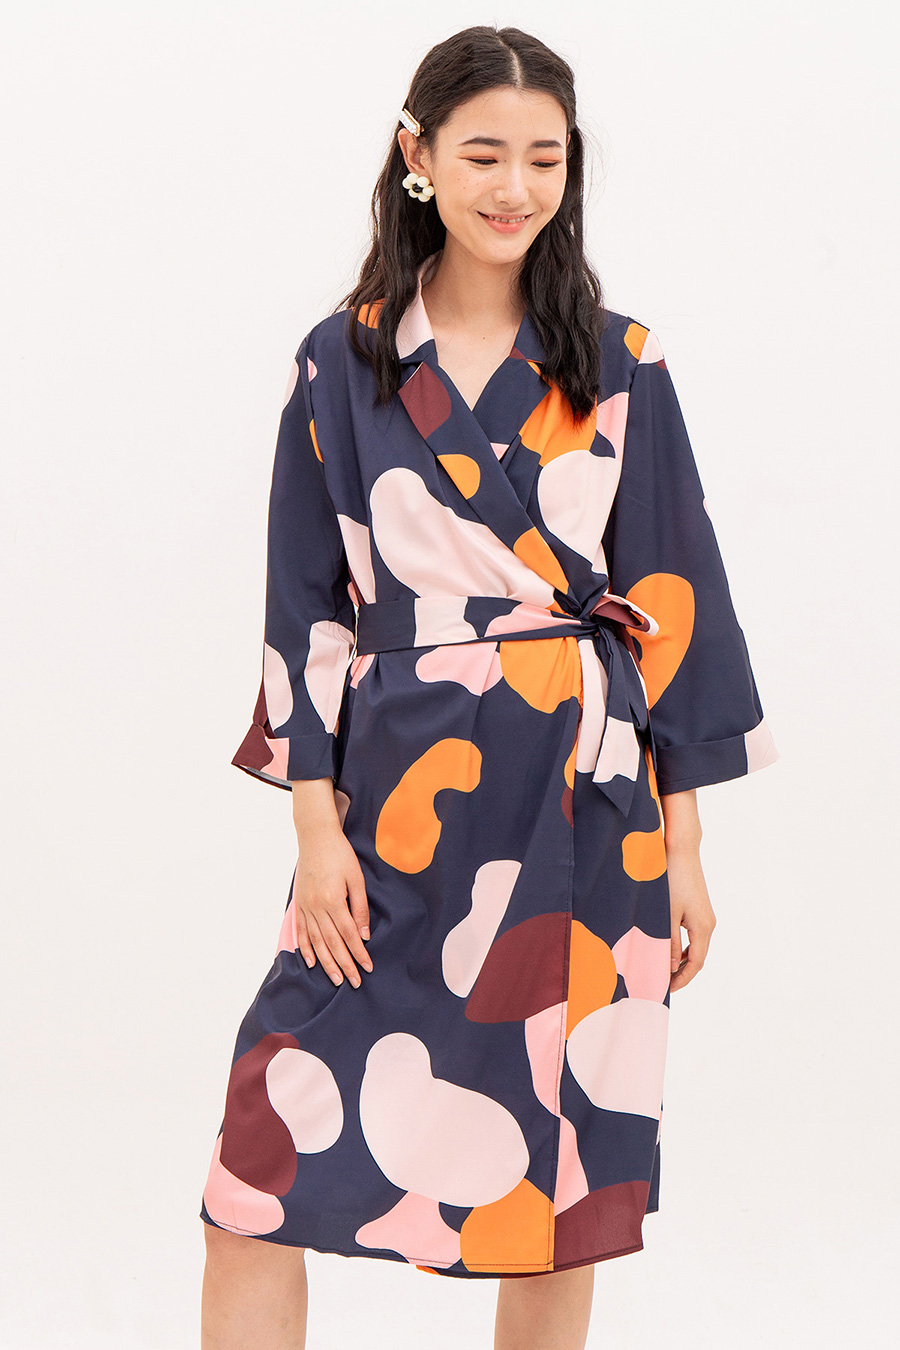 SULLANA DRESS - MIDNIGHT SUN